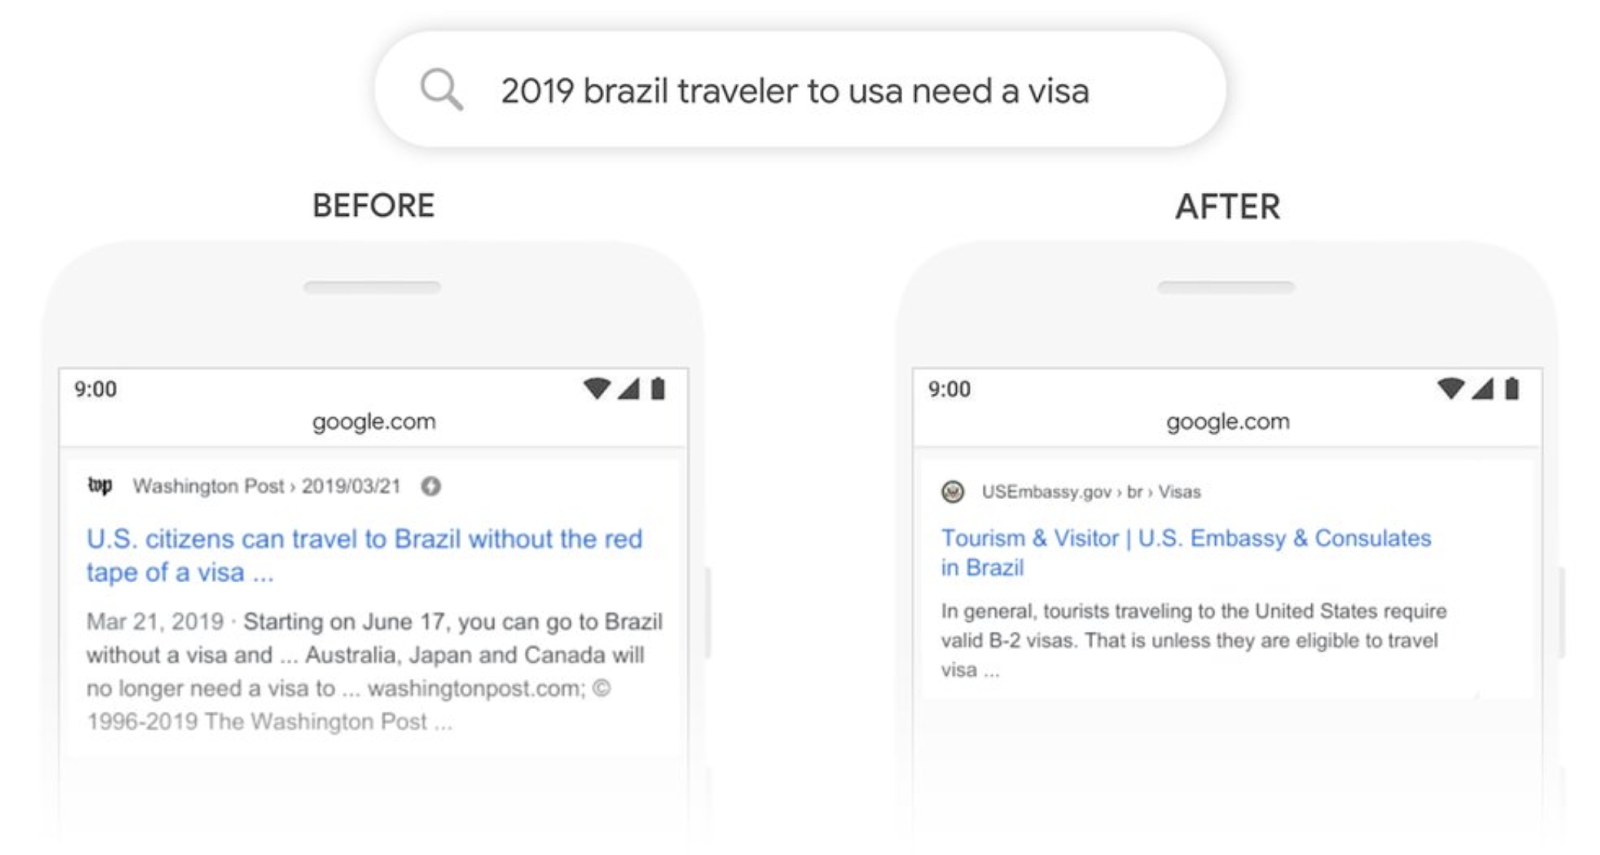 google search results after the bert update - a visa example